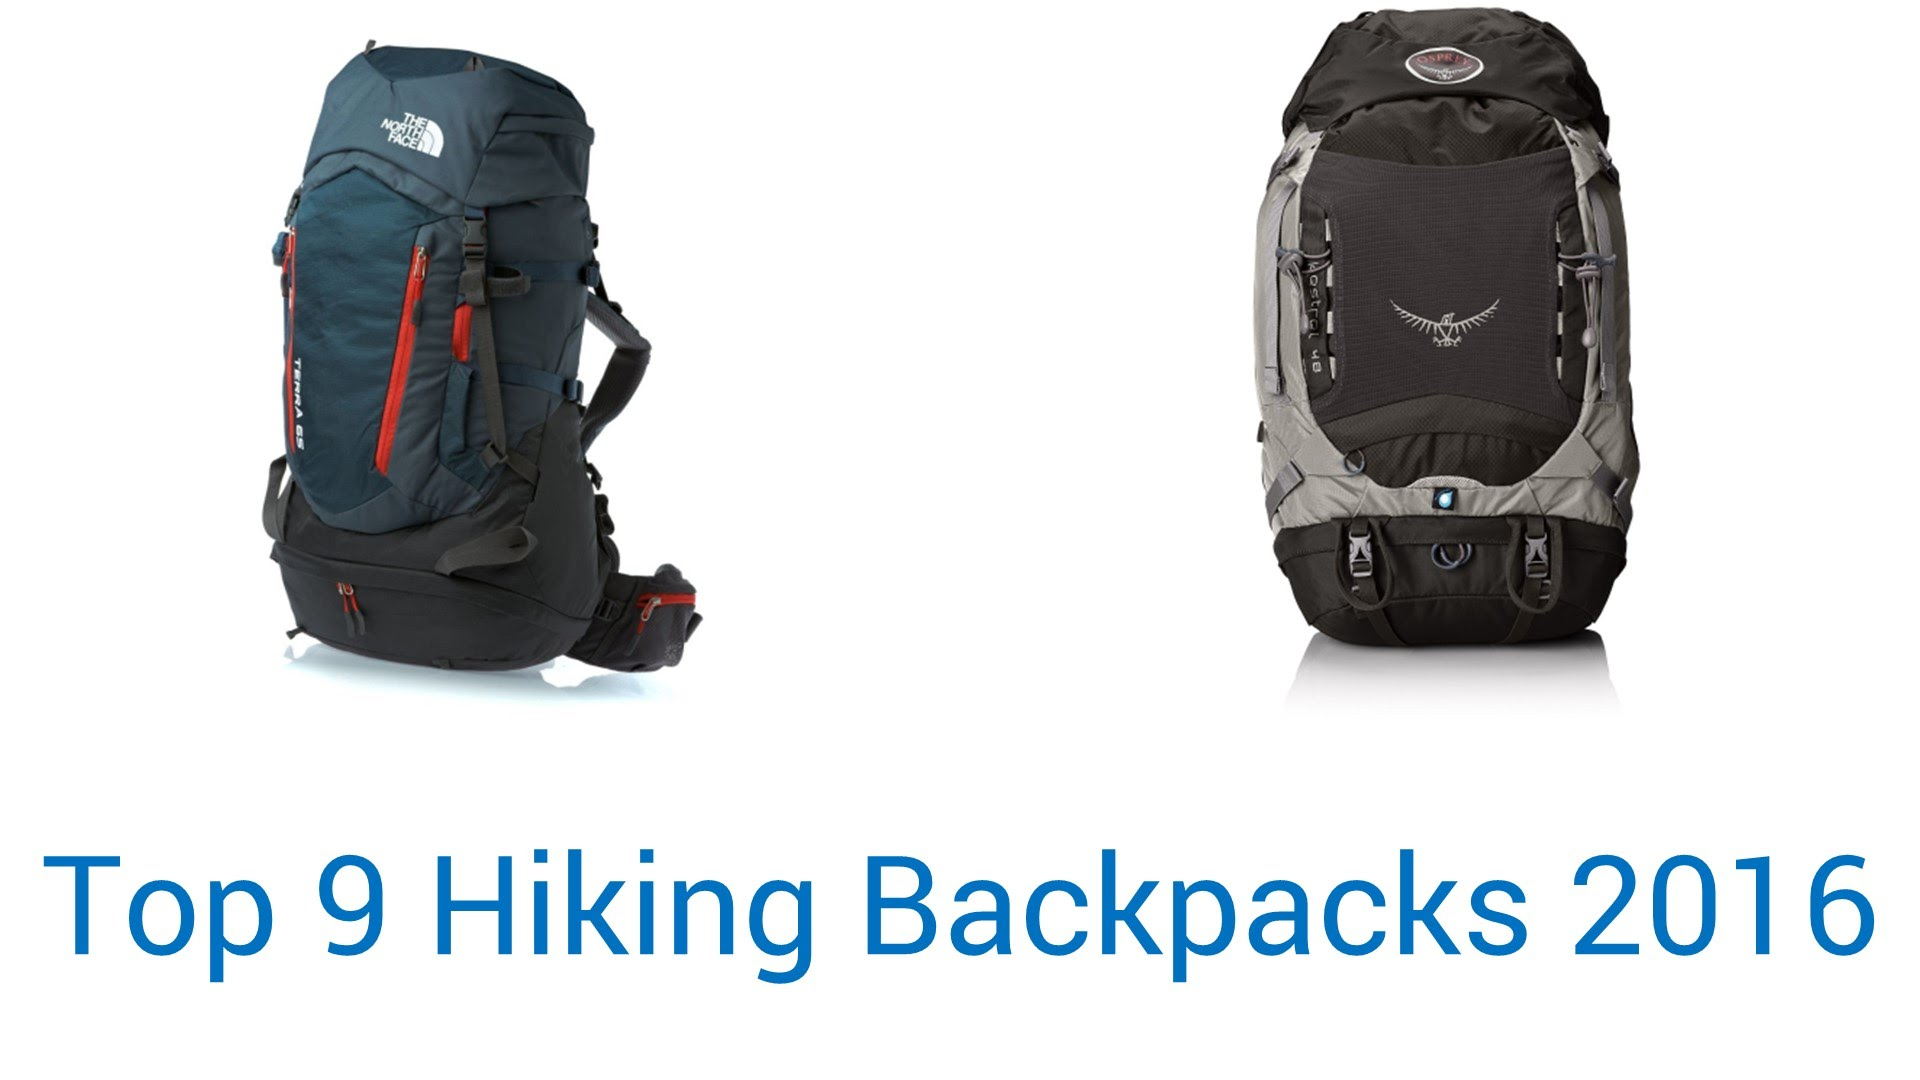 Best Backpacking Backpacks syar2a5i